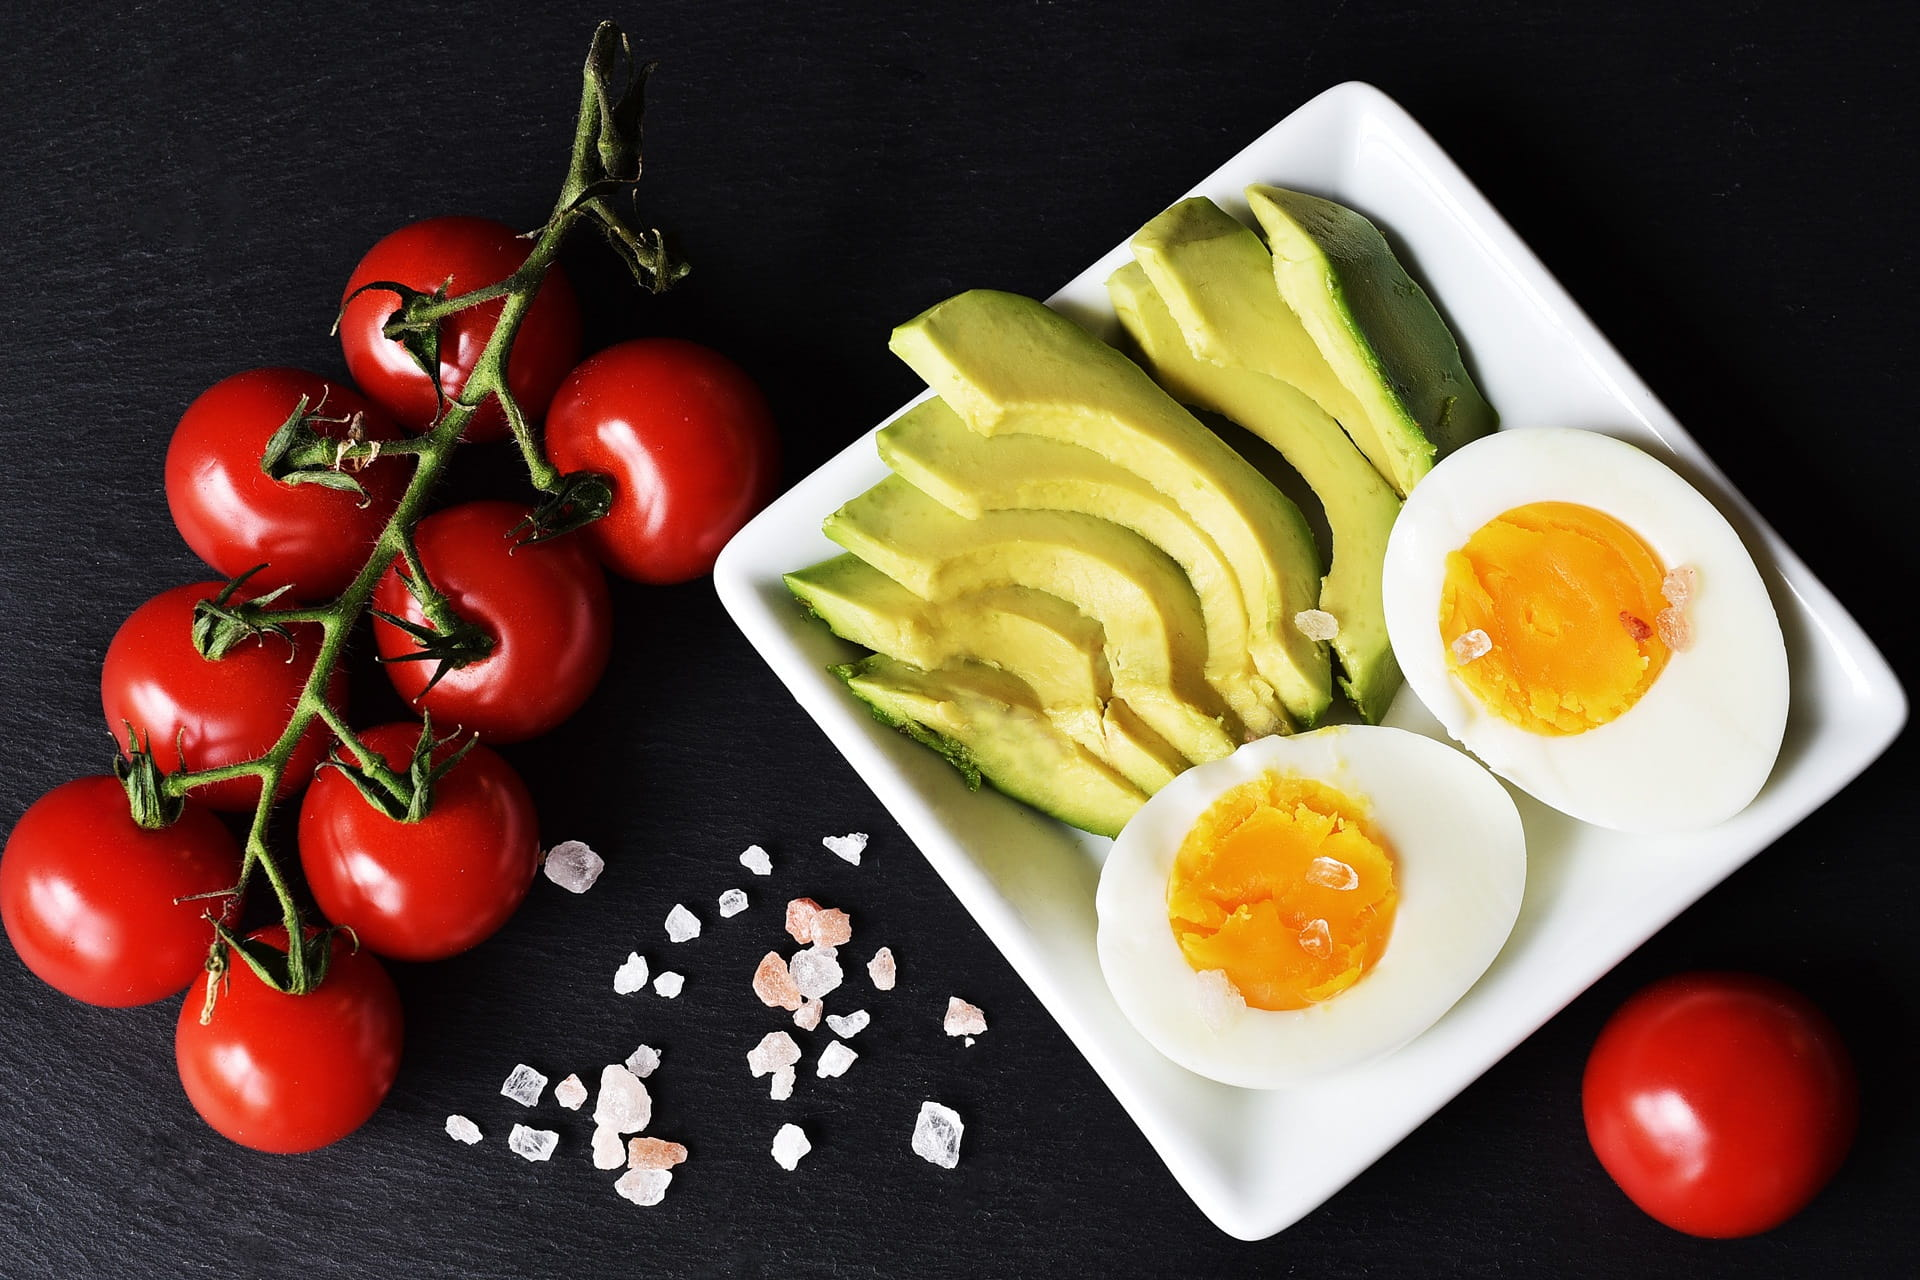 tomato vine and plate of eggs and avocados